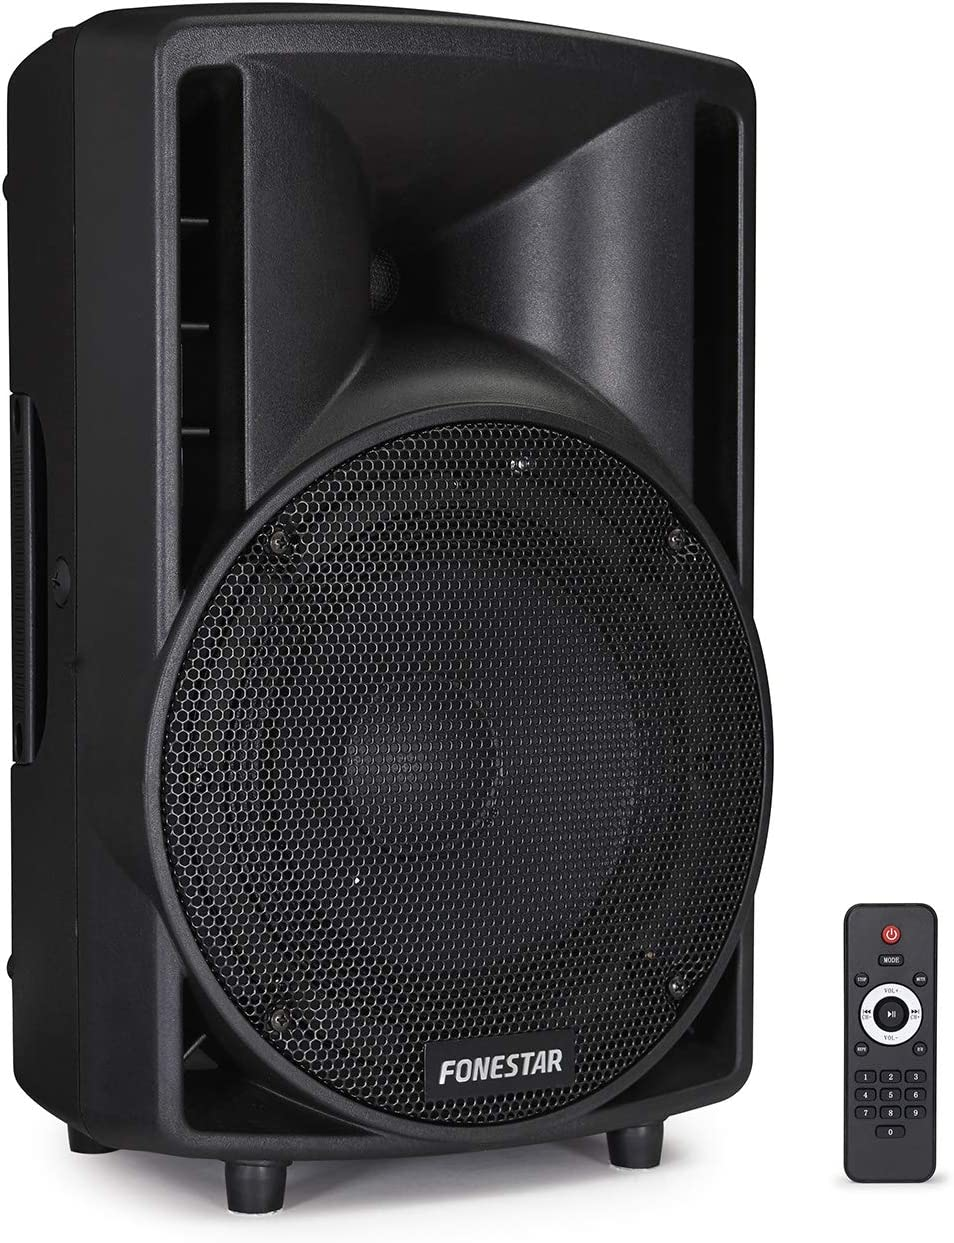 Fonestar ASB-880U - Altavoz autoamplificado (USB, SD, MP3), color negro